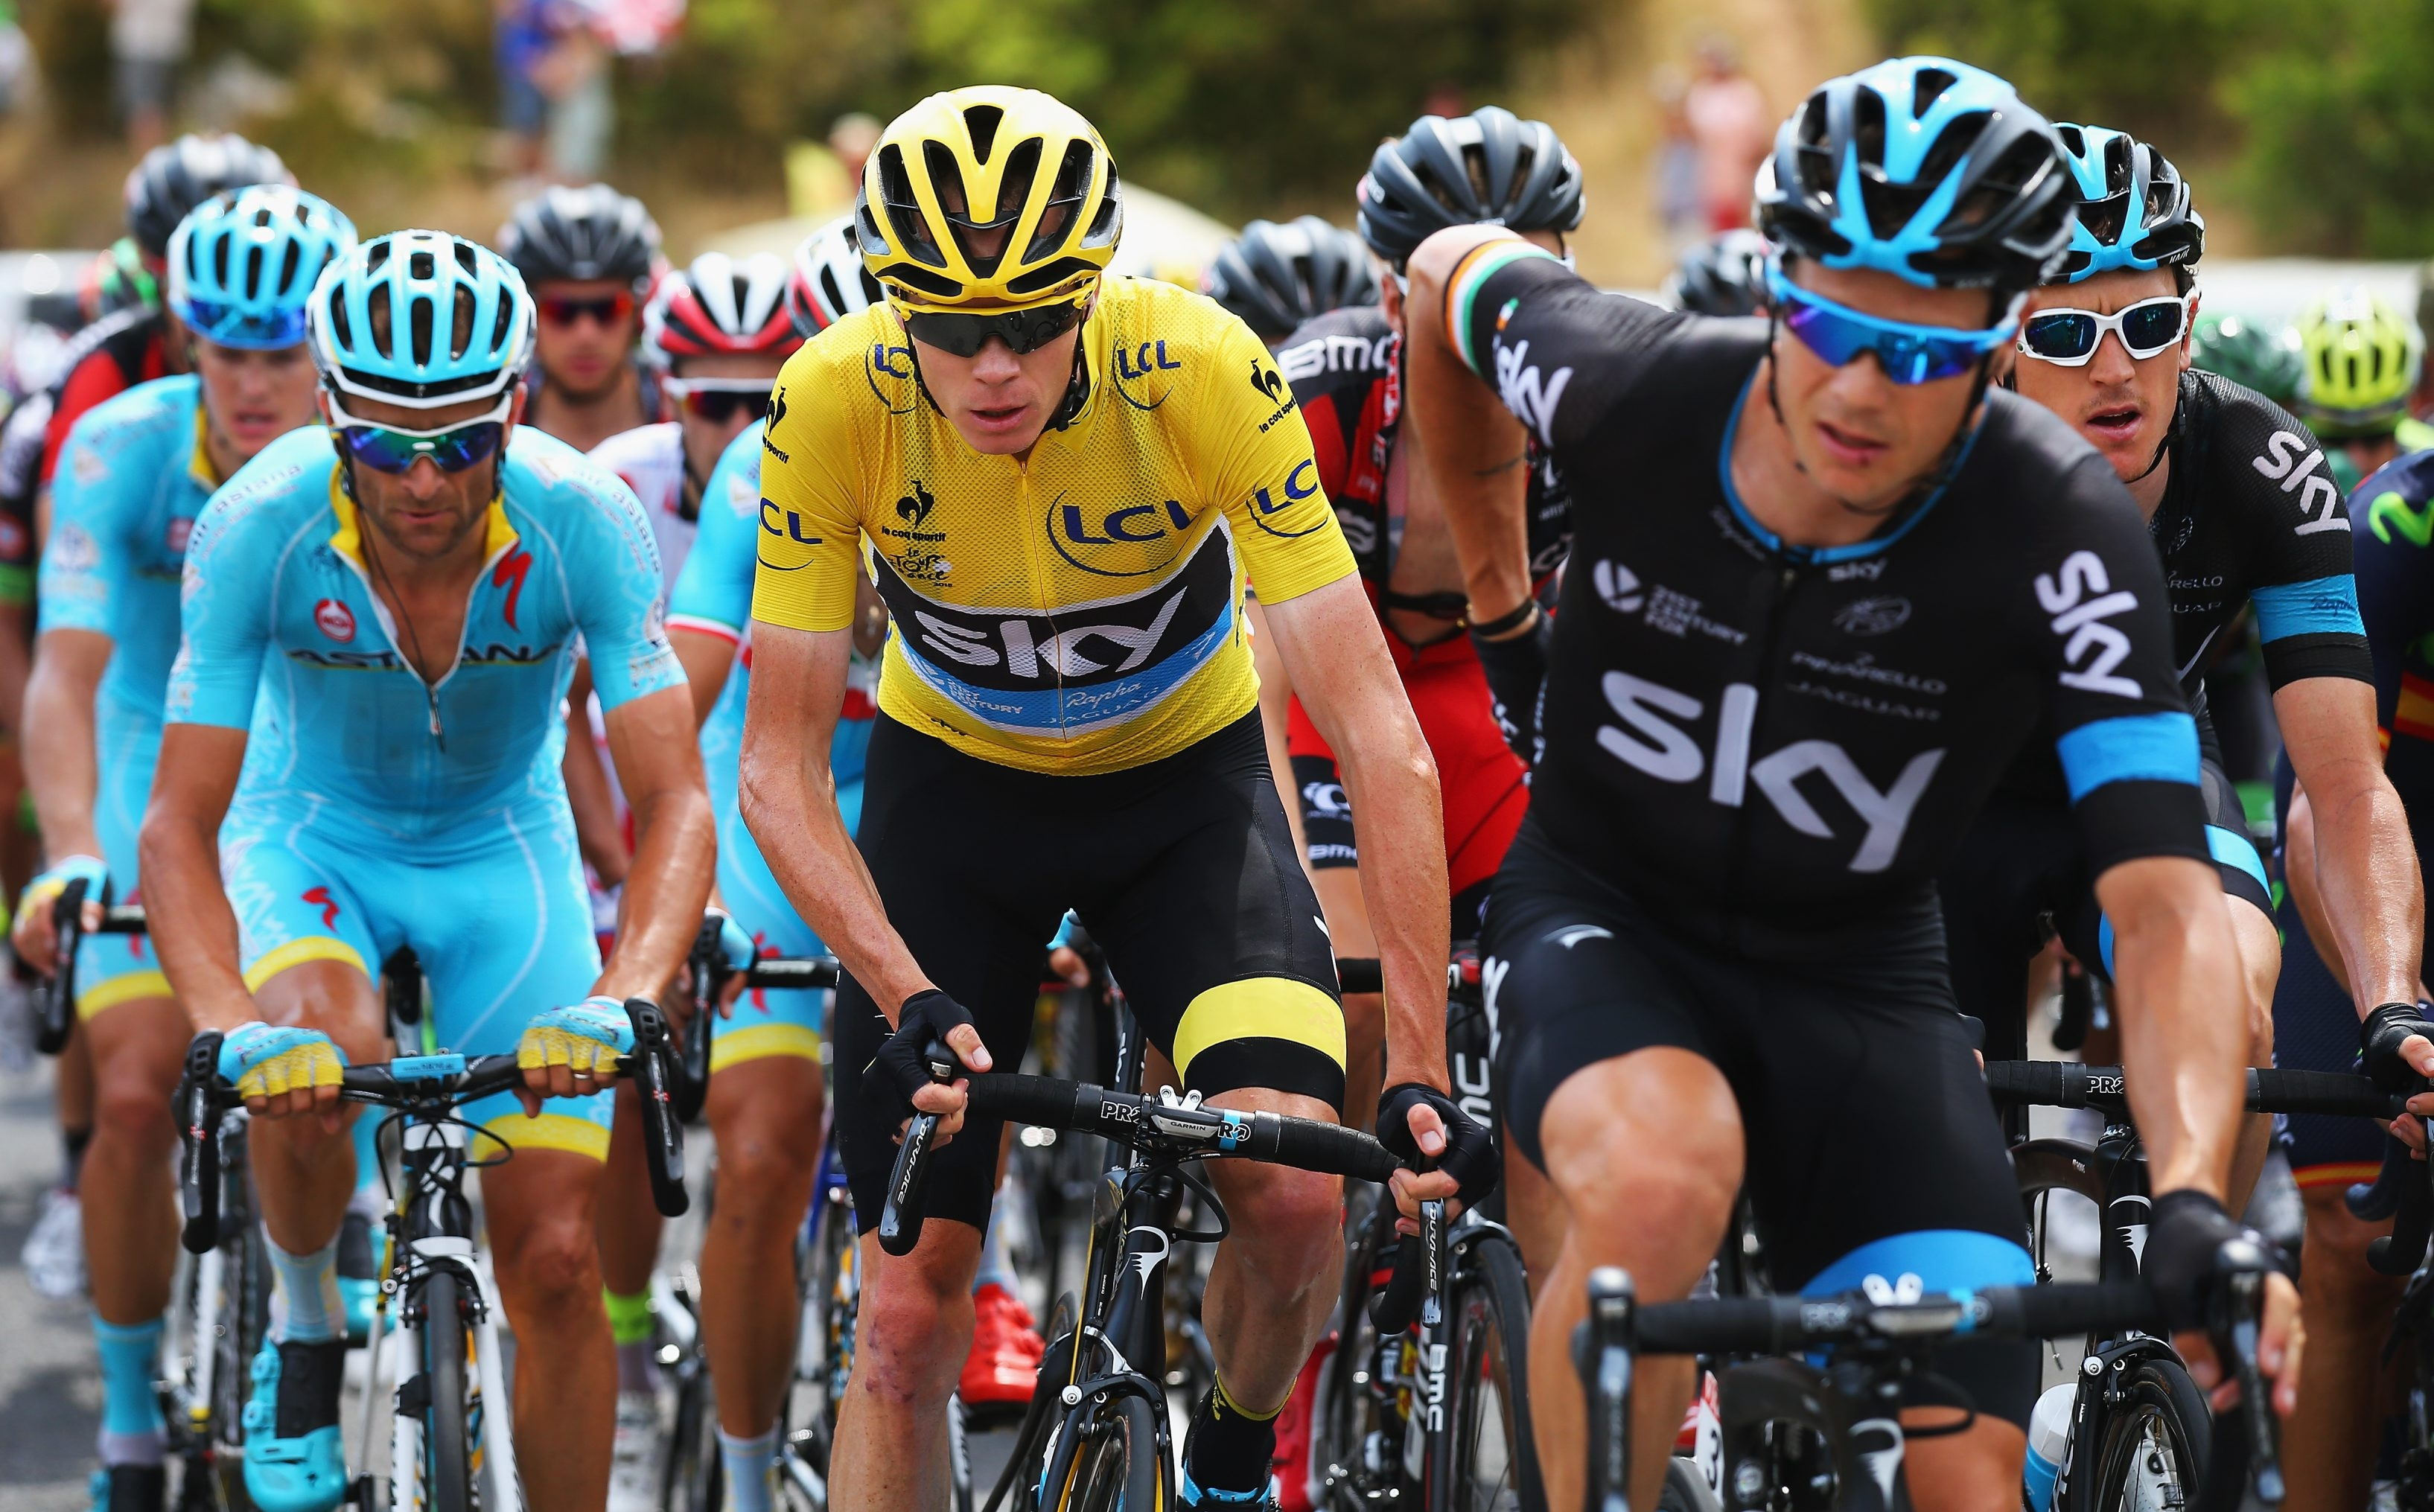 Chris Froome of Great Britain takes his lead into the final week of the Tour de France on NBCSN.